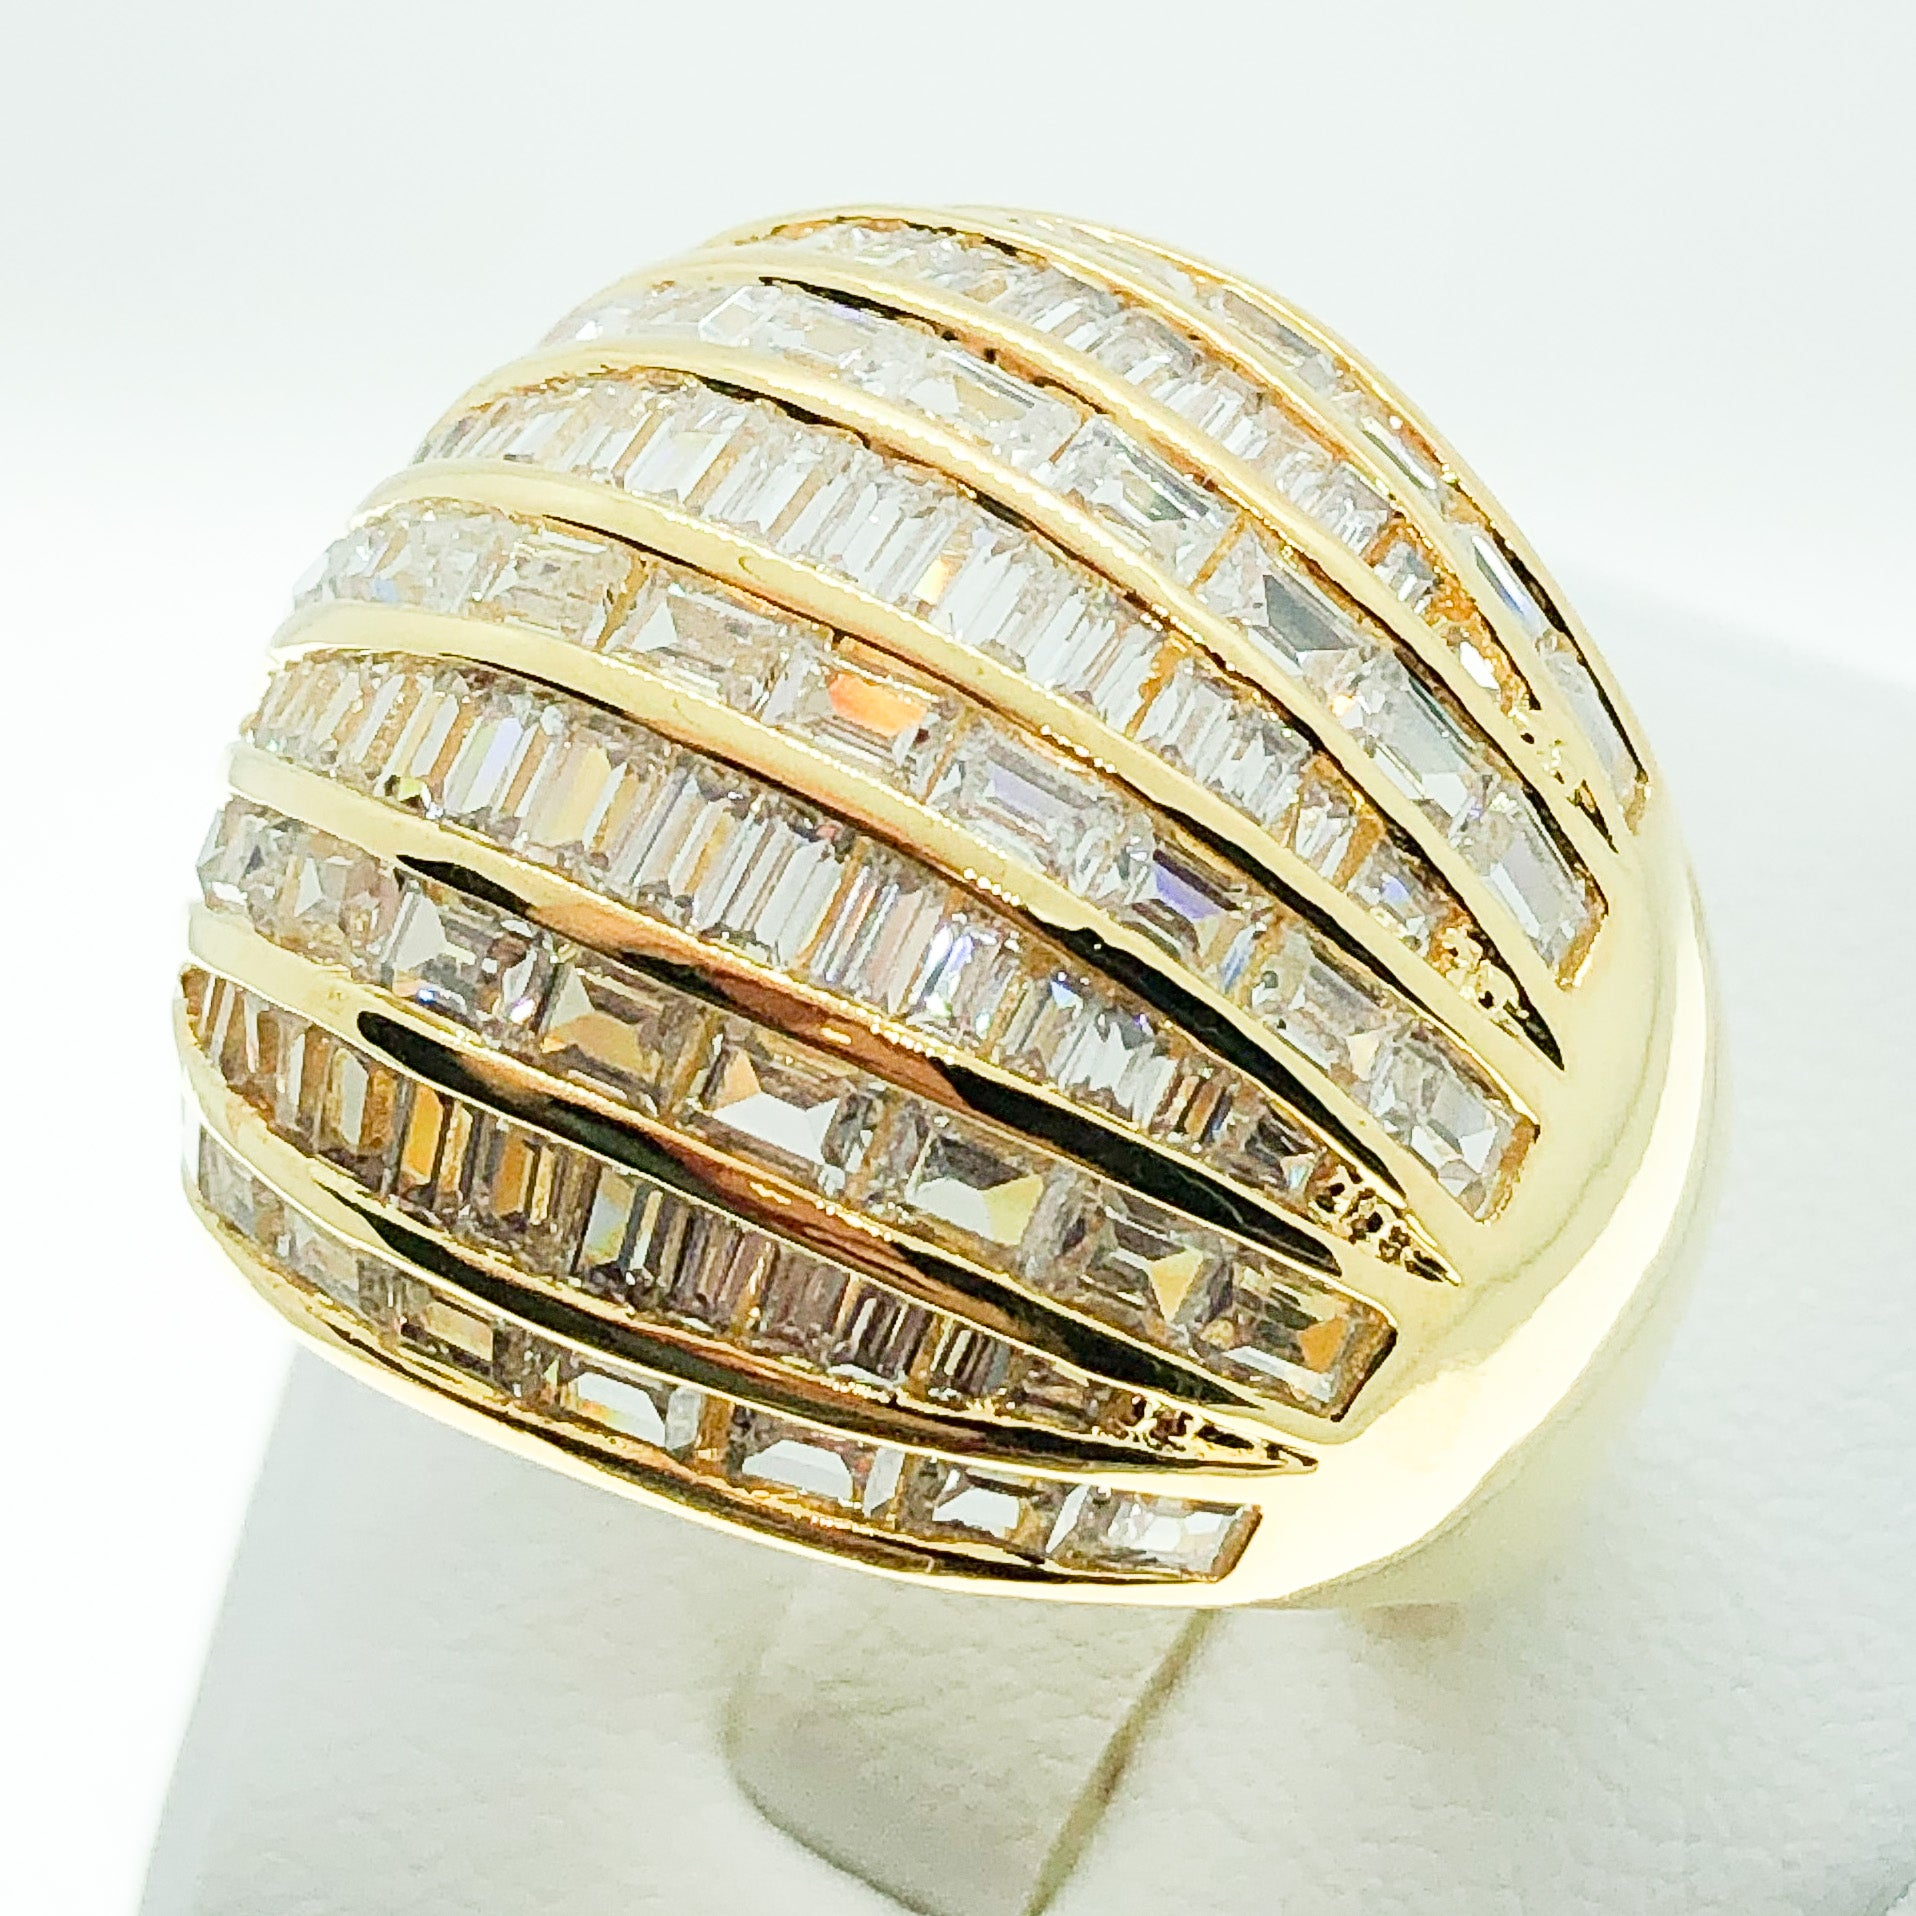 ID:R5018 Women 18K Yellow Gold GF Fashion Jewelry Impressive Unique Design Dome Cocktail Ring Anniversary Promise Gift